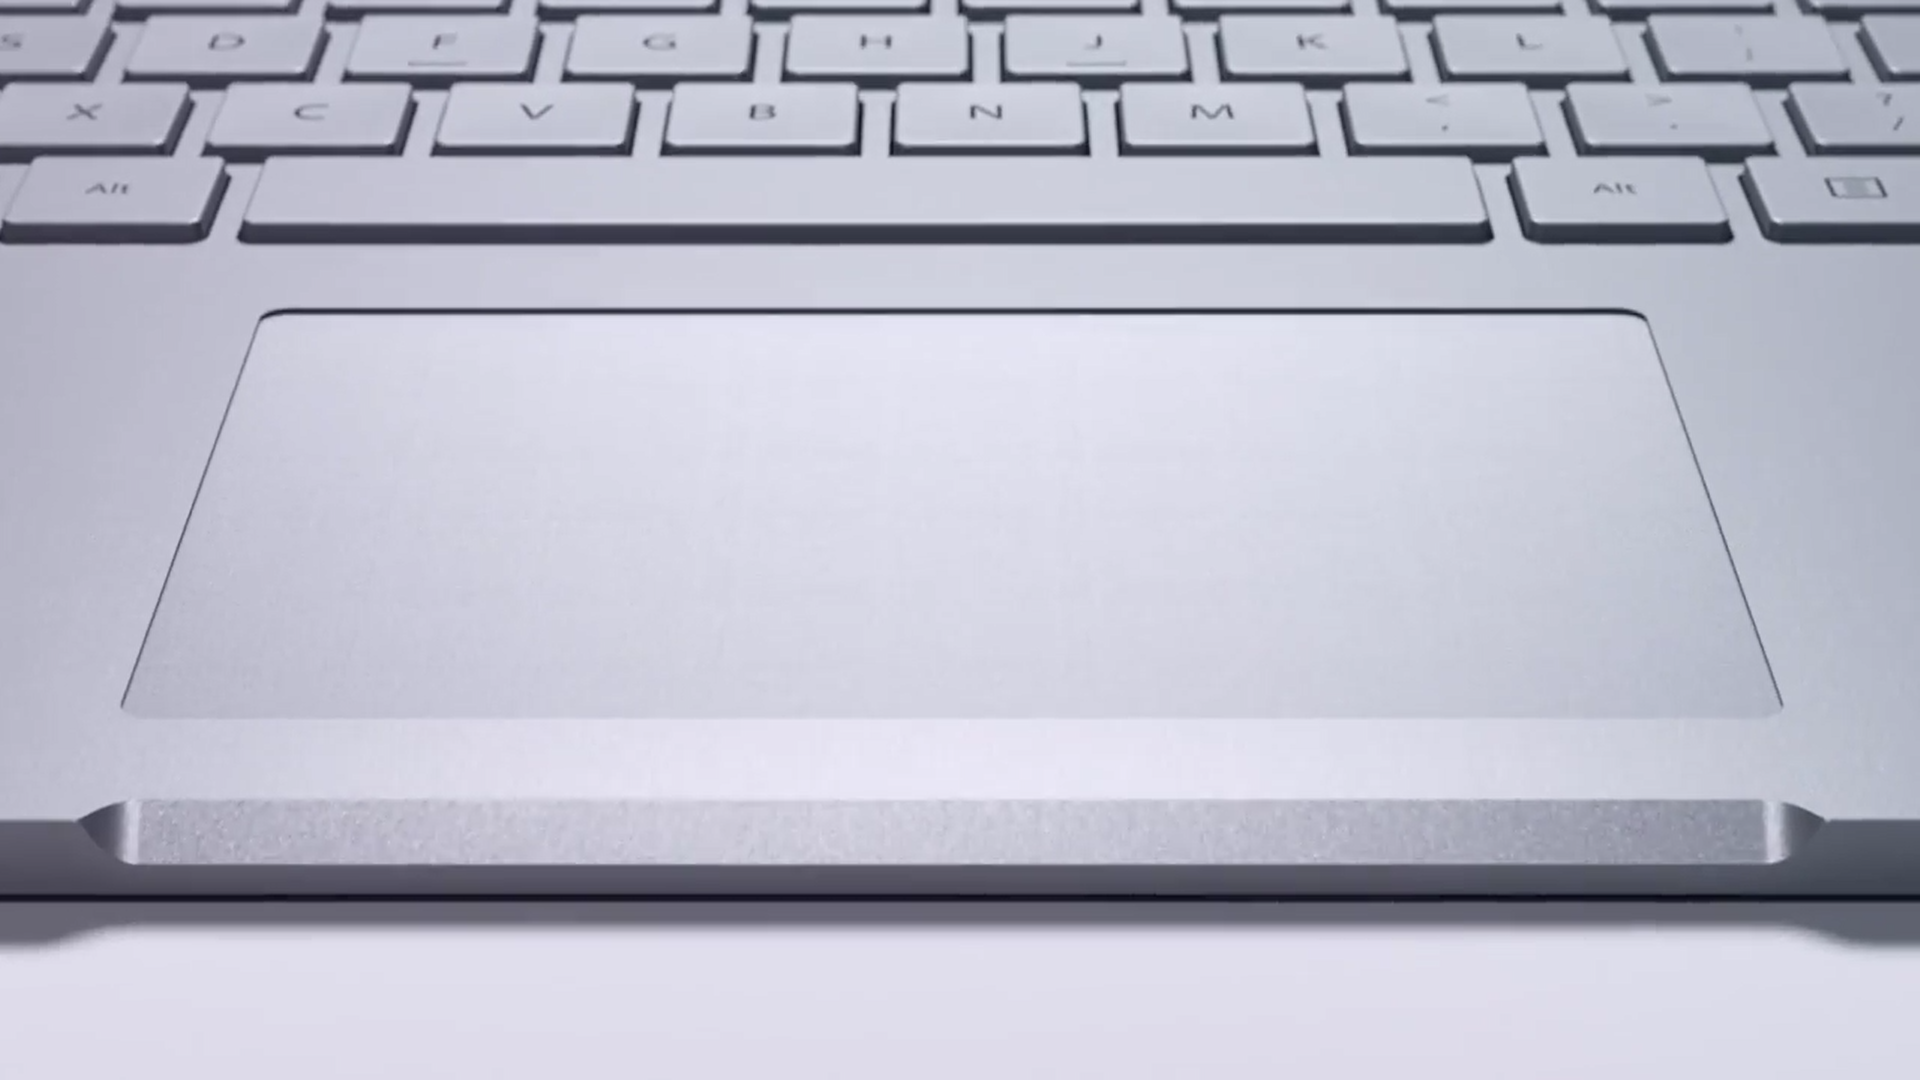 Surface Book Keyboard